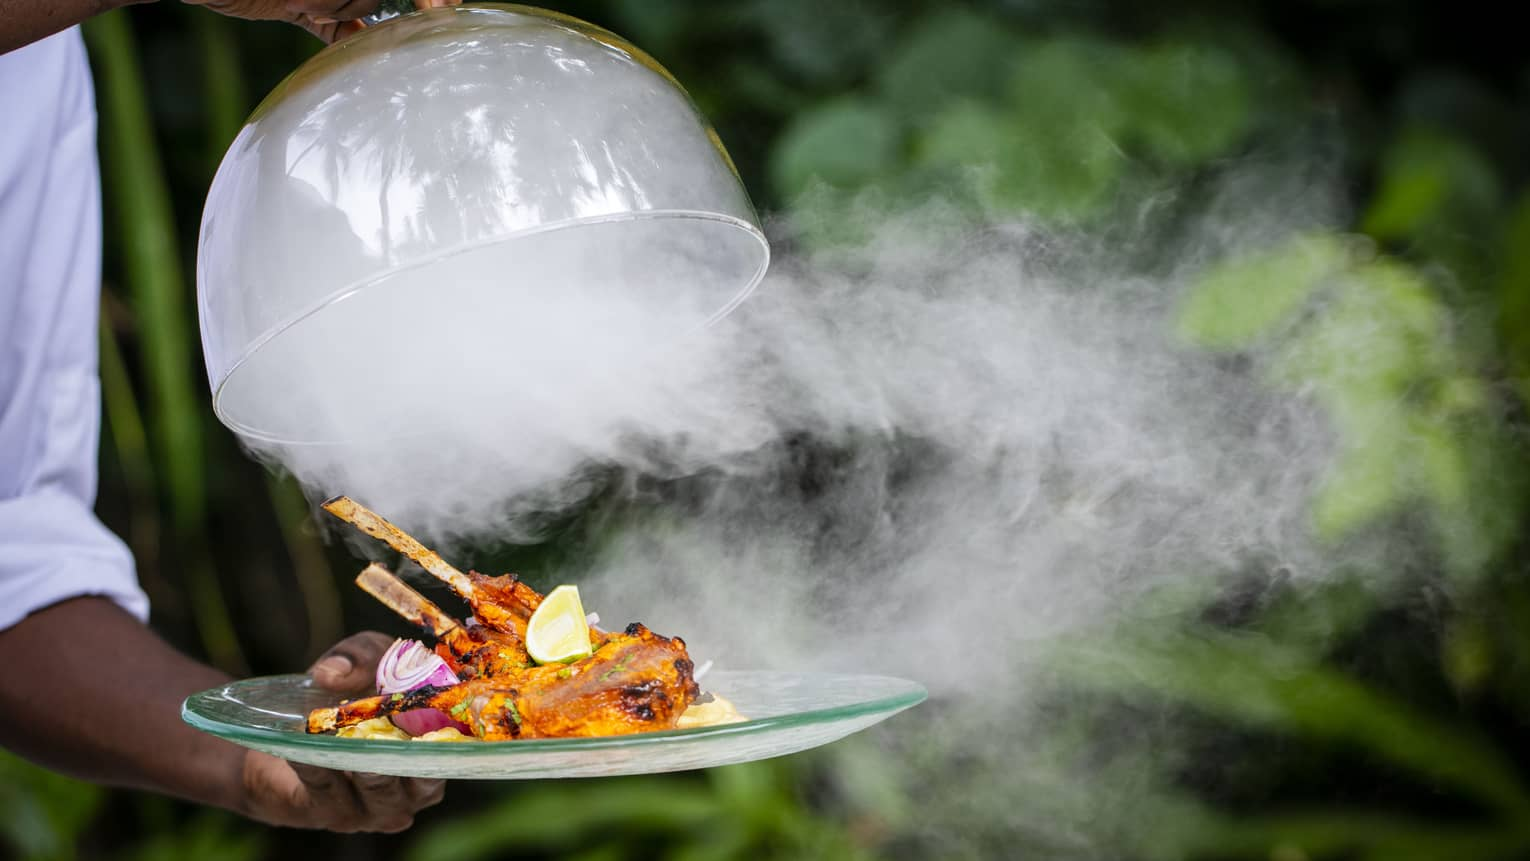 A Four Seasons dining staff taking the lid off of a dinner tray – steam is pouring out over a cooked meat dish on skewers